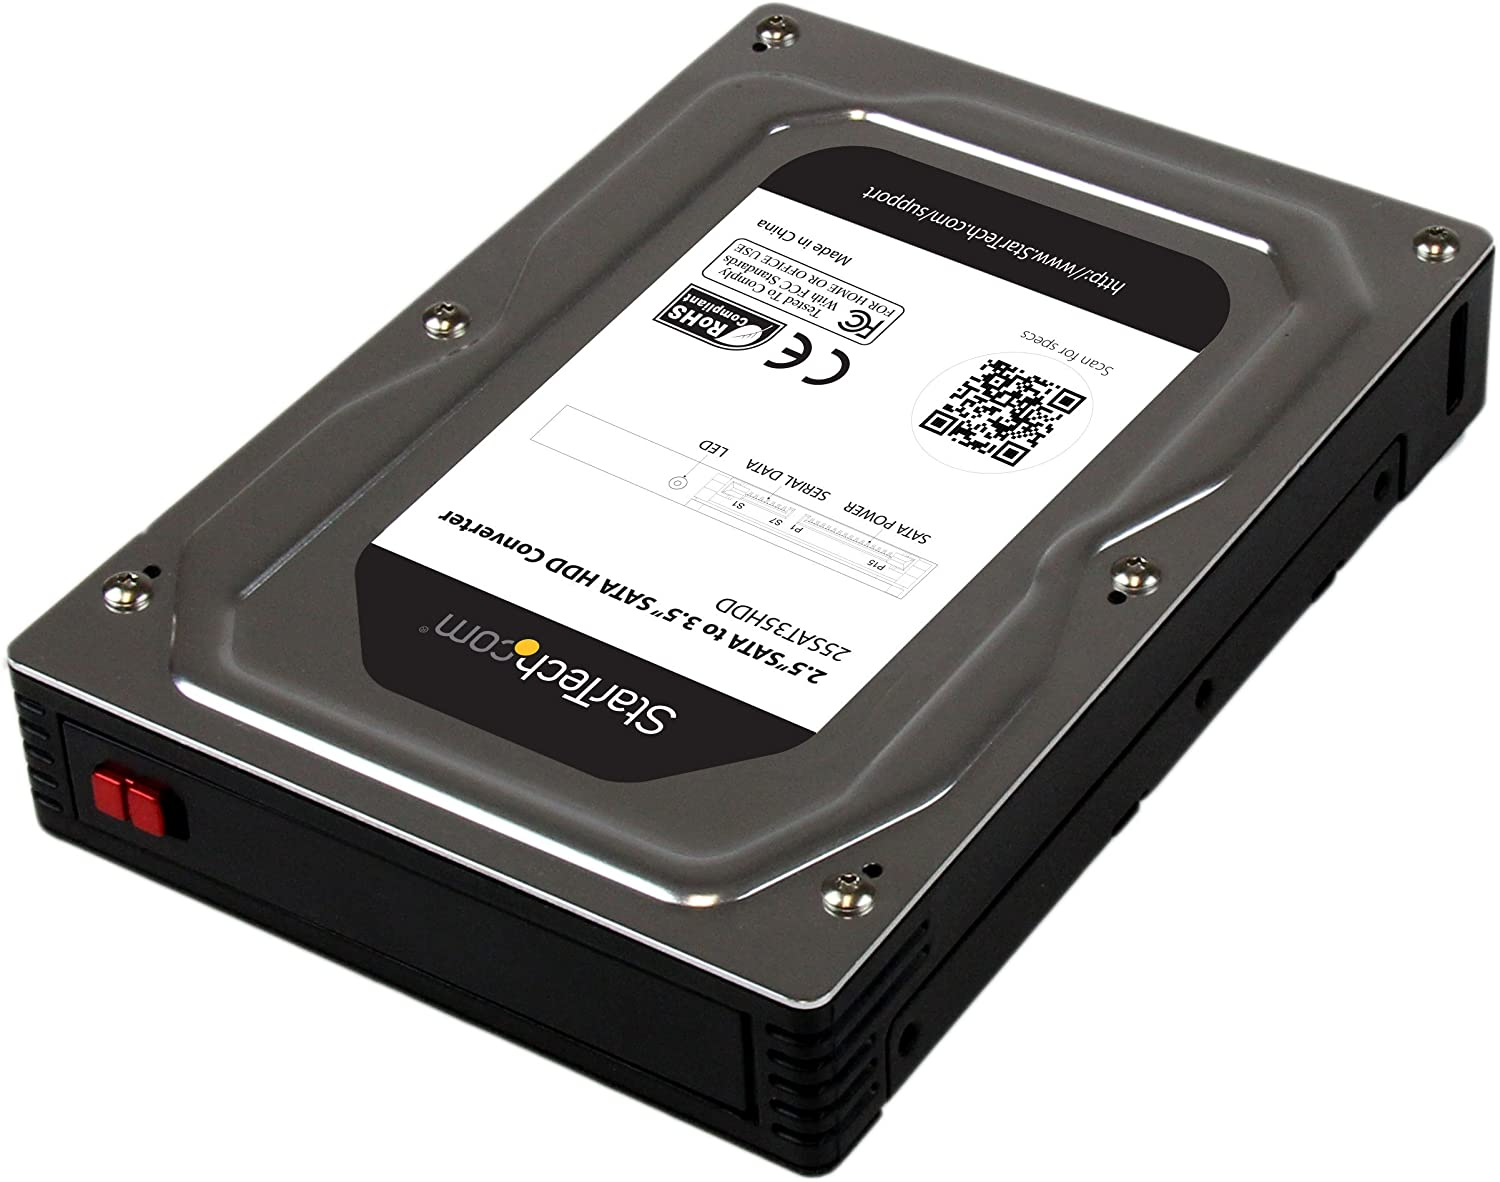 1 x SSD Hard Drive Adapter 5.25 inch to 3.5 inch 2.5 inch SSD Hard Drive Adapter Tray Drive Bay Drives and Storage Hard Drives /& Accessories